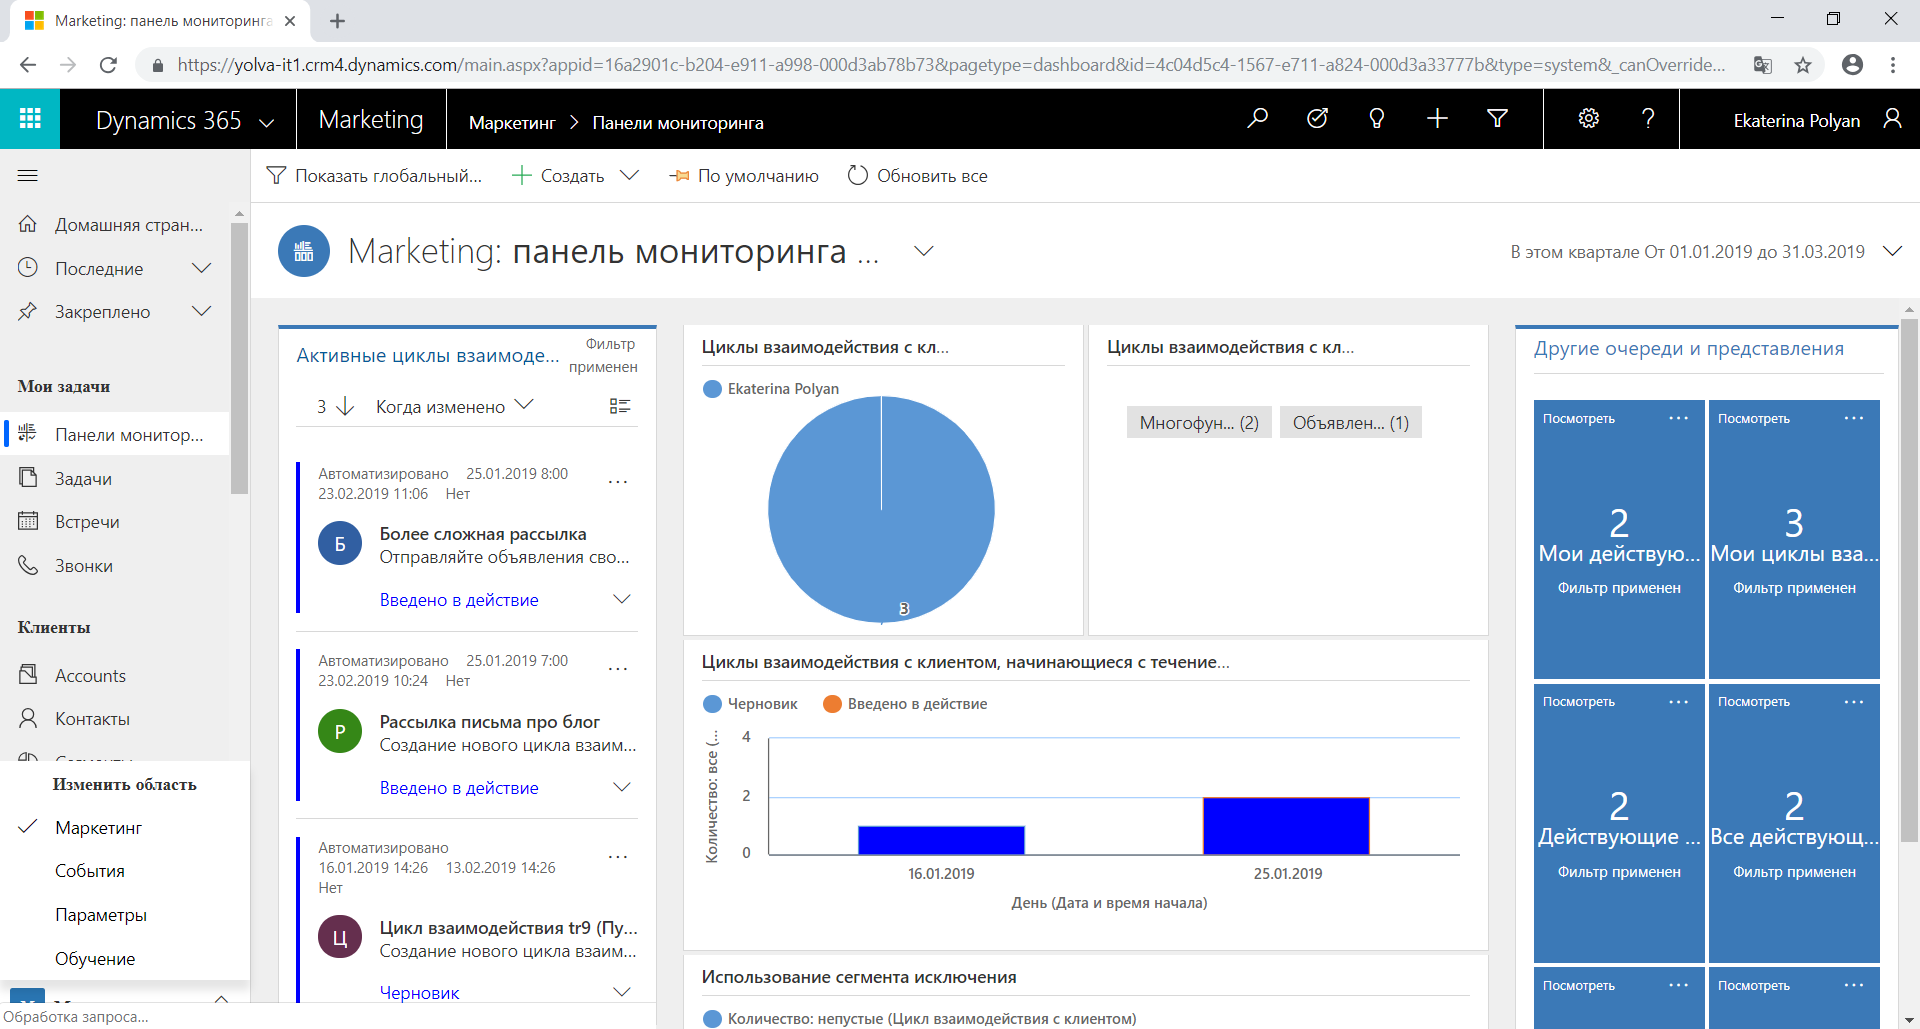 Общий вид приложения Dynamics 365 for Marketing